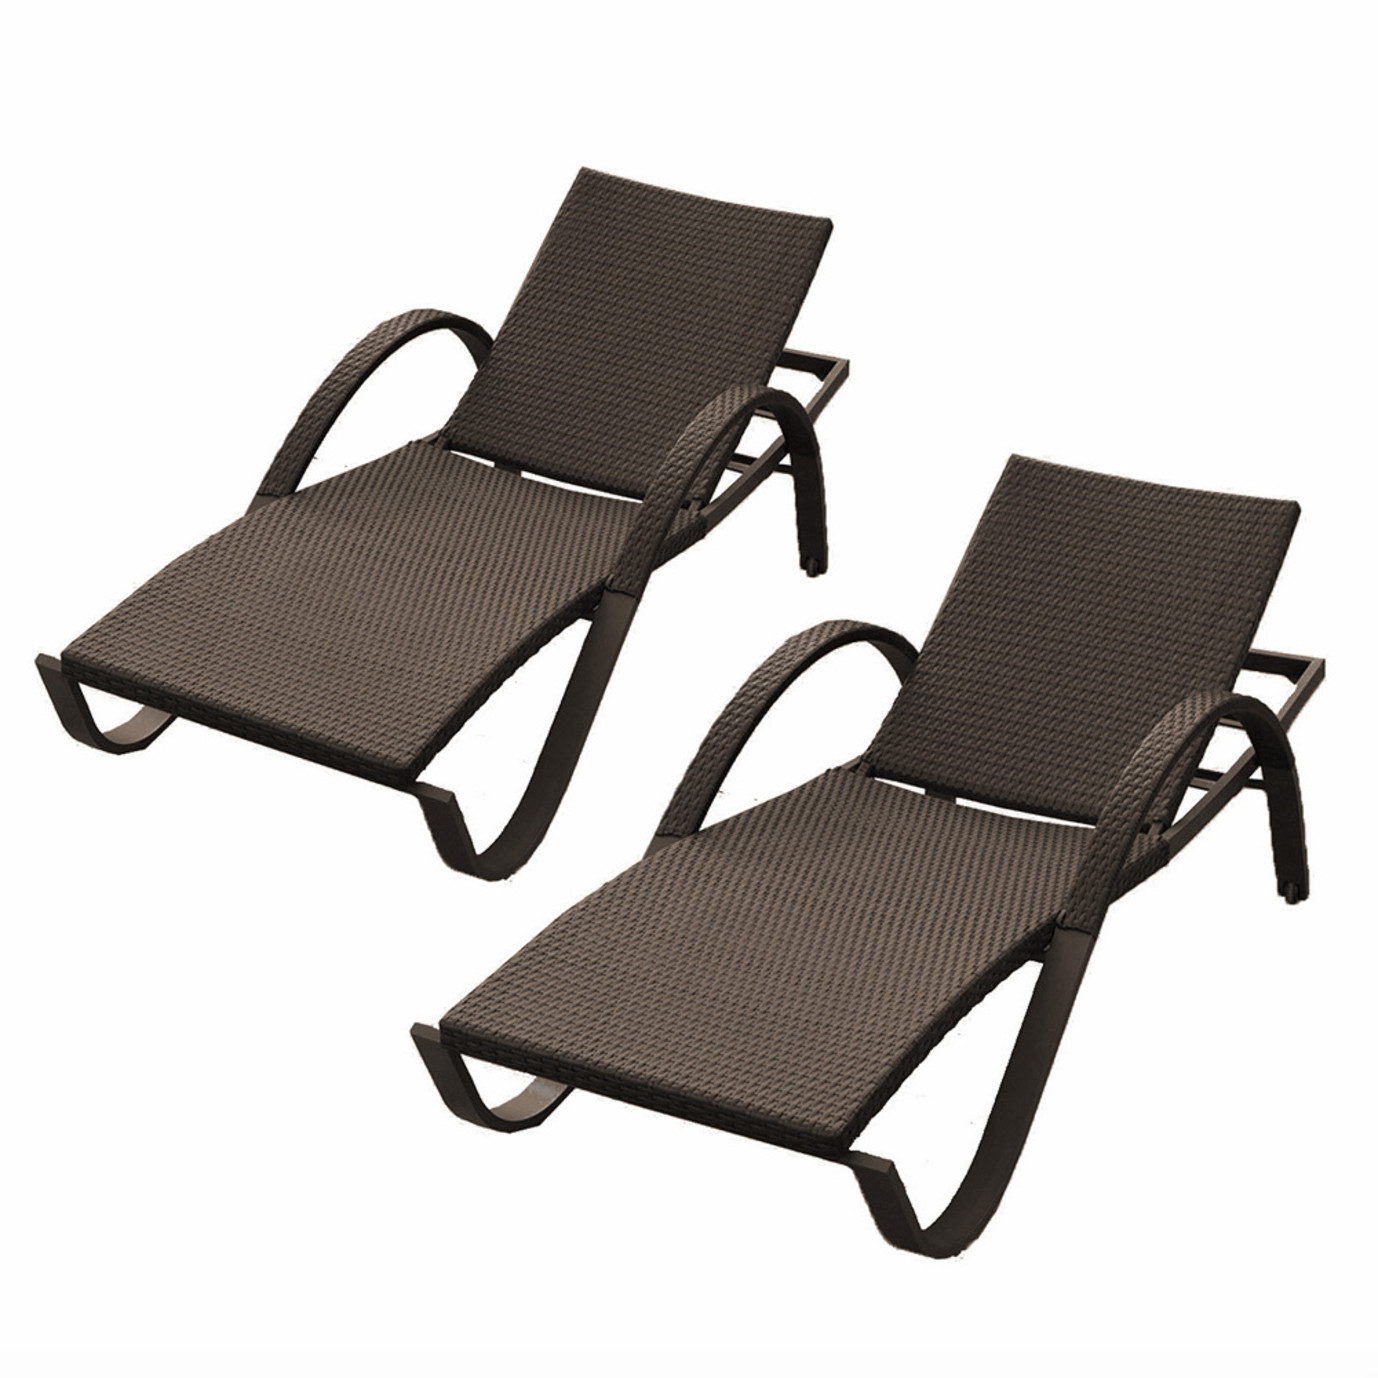 Deco chaise lounges 2pk rst brands for Chaise longue deco